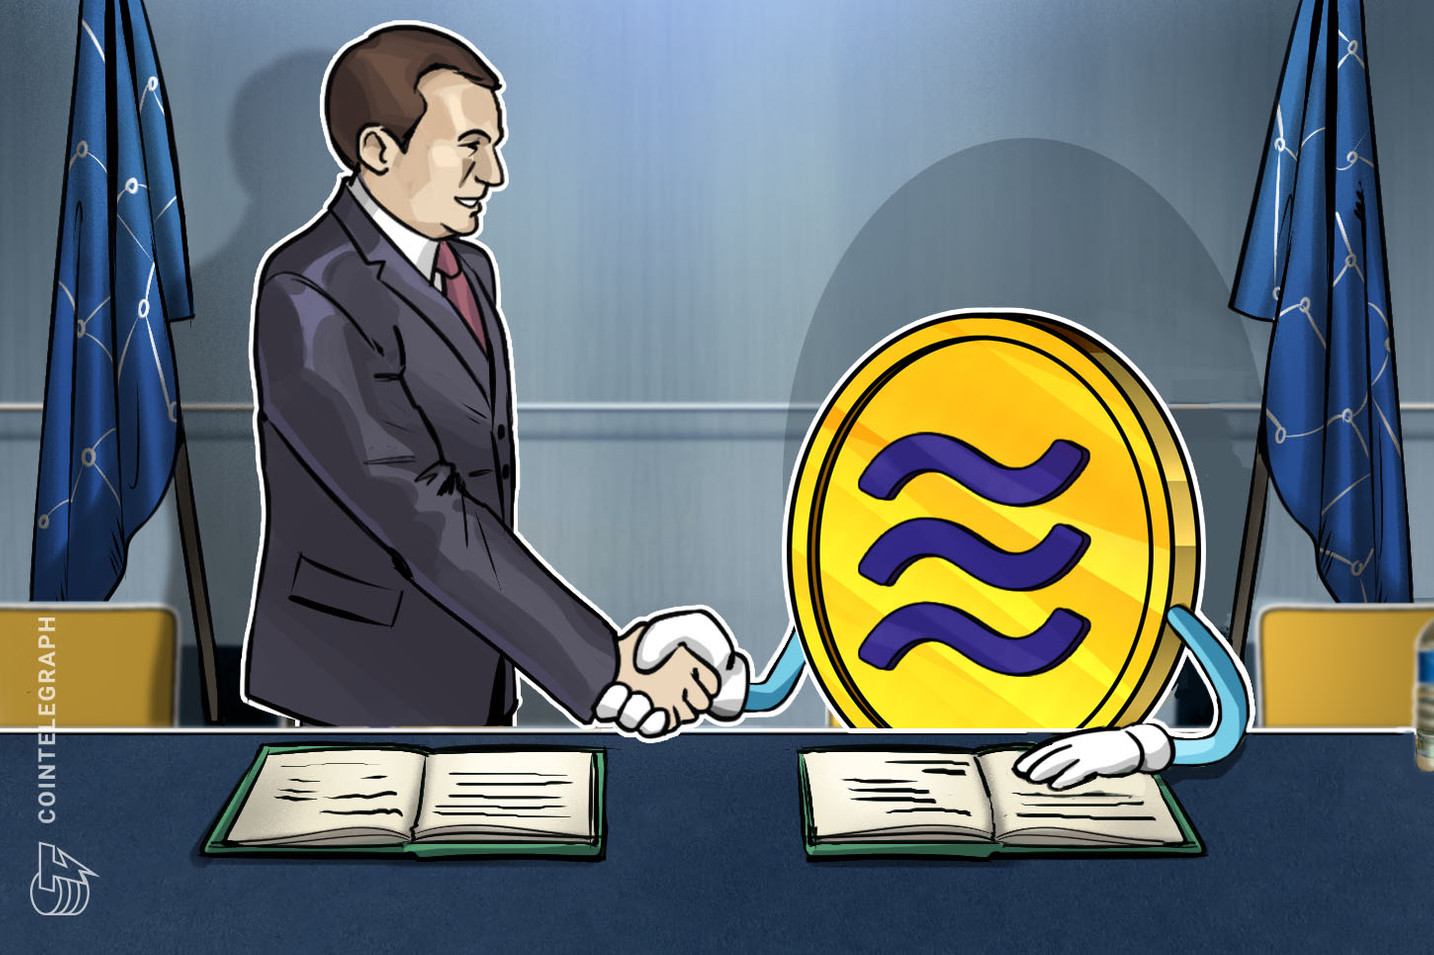 Taipei-Based Crypto Firm Maicoin Seeks Membership in Libra Association